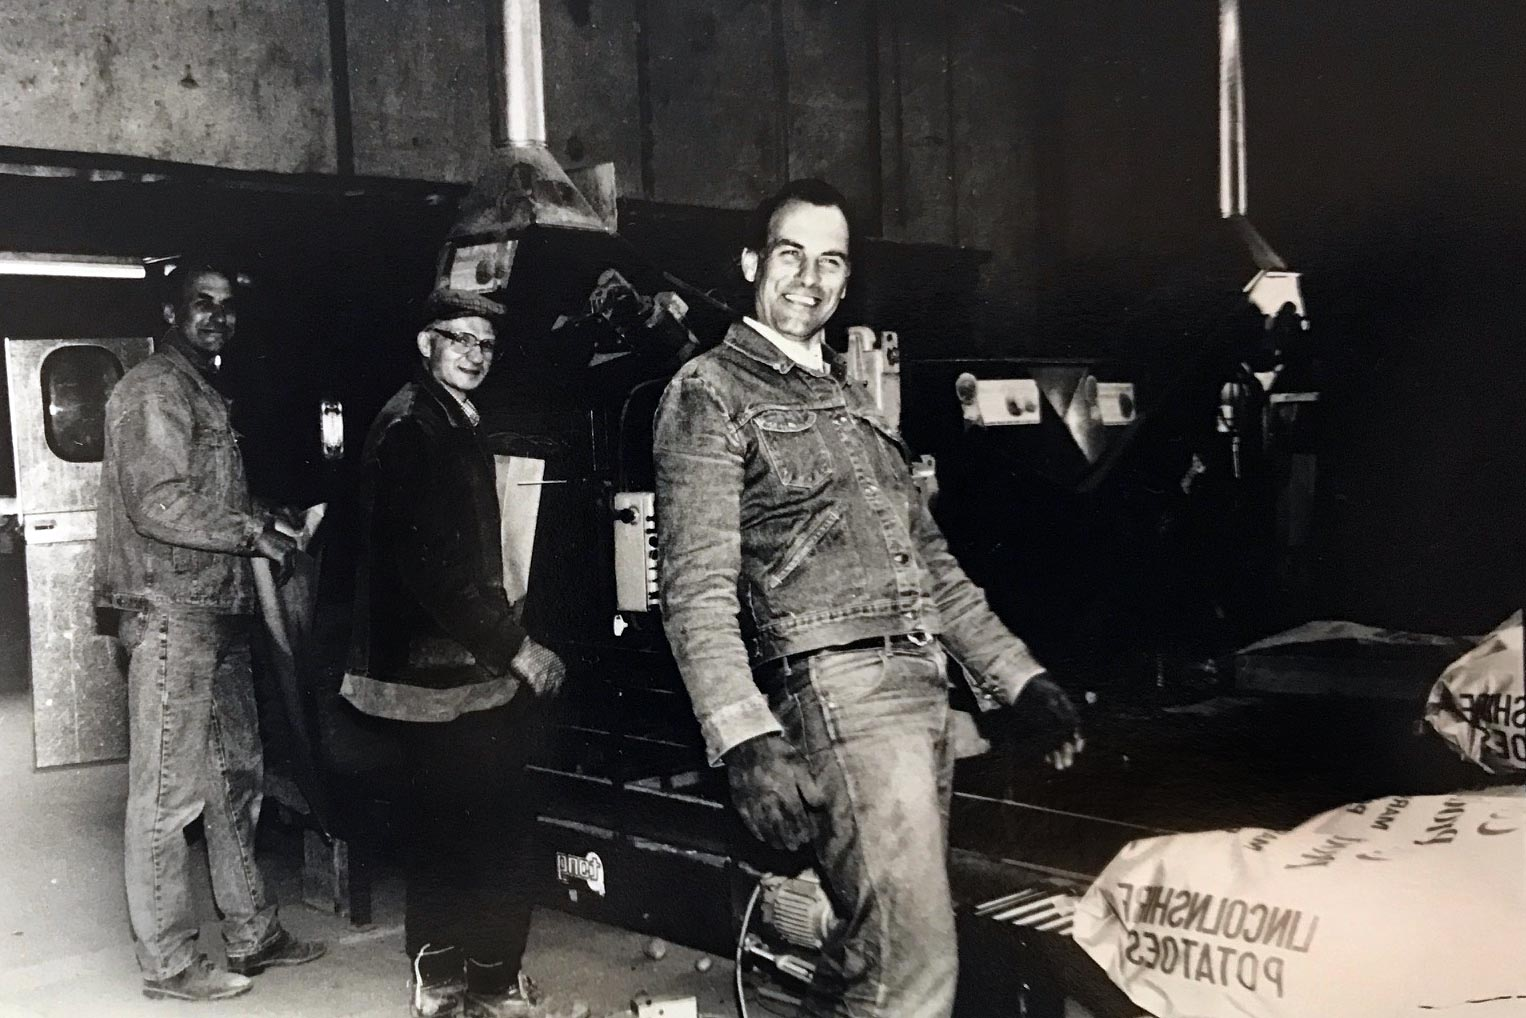 several men working in a factory, one of the men is laughing